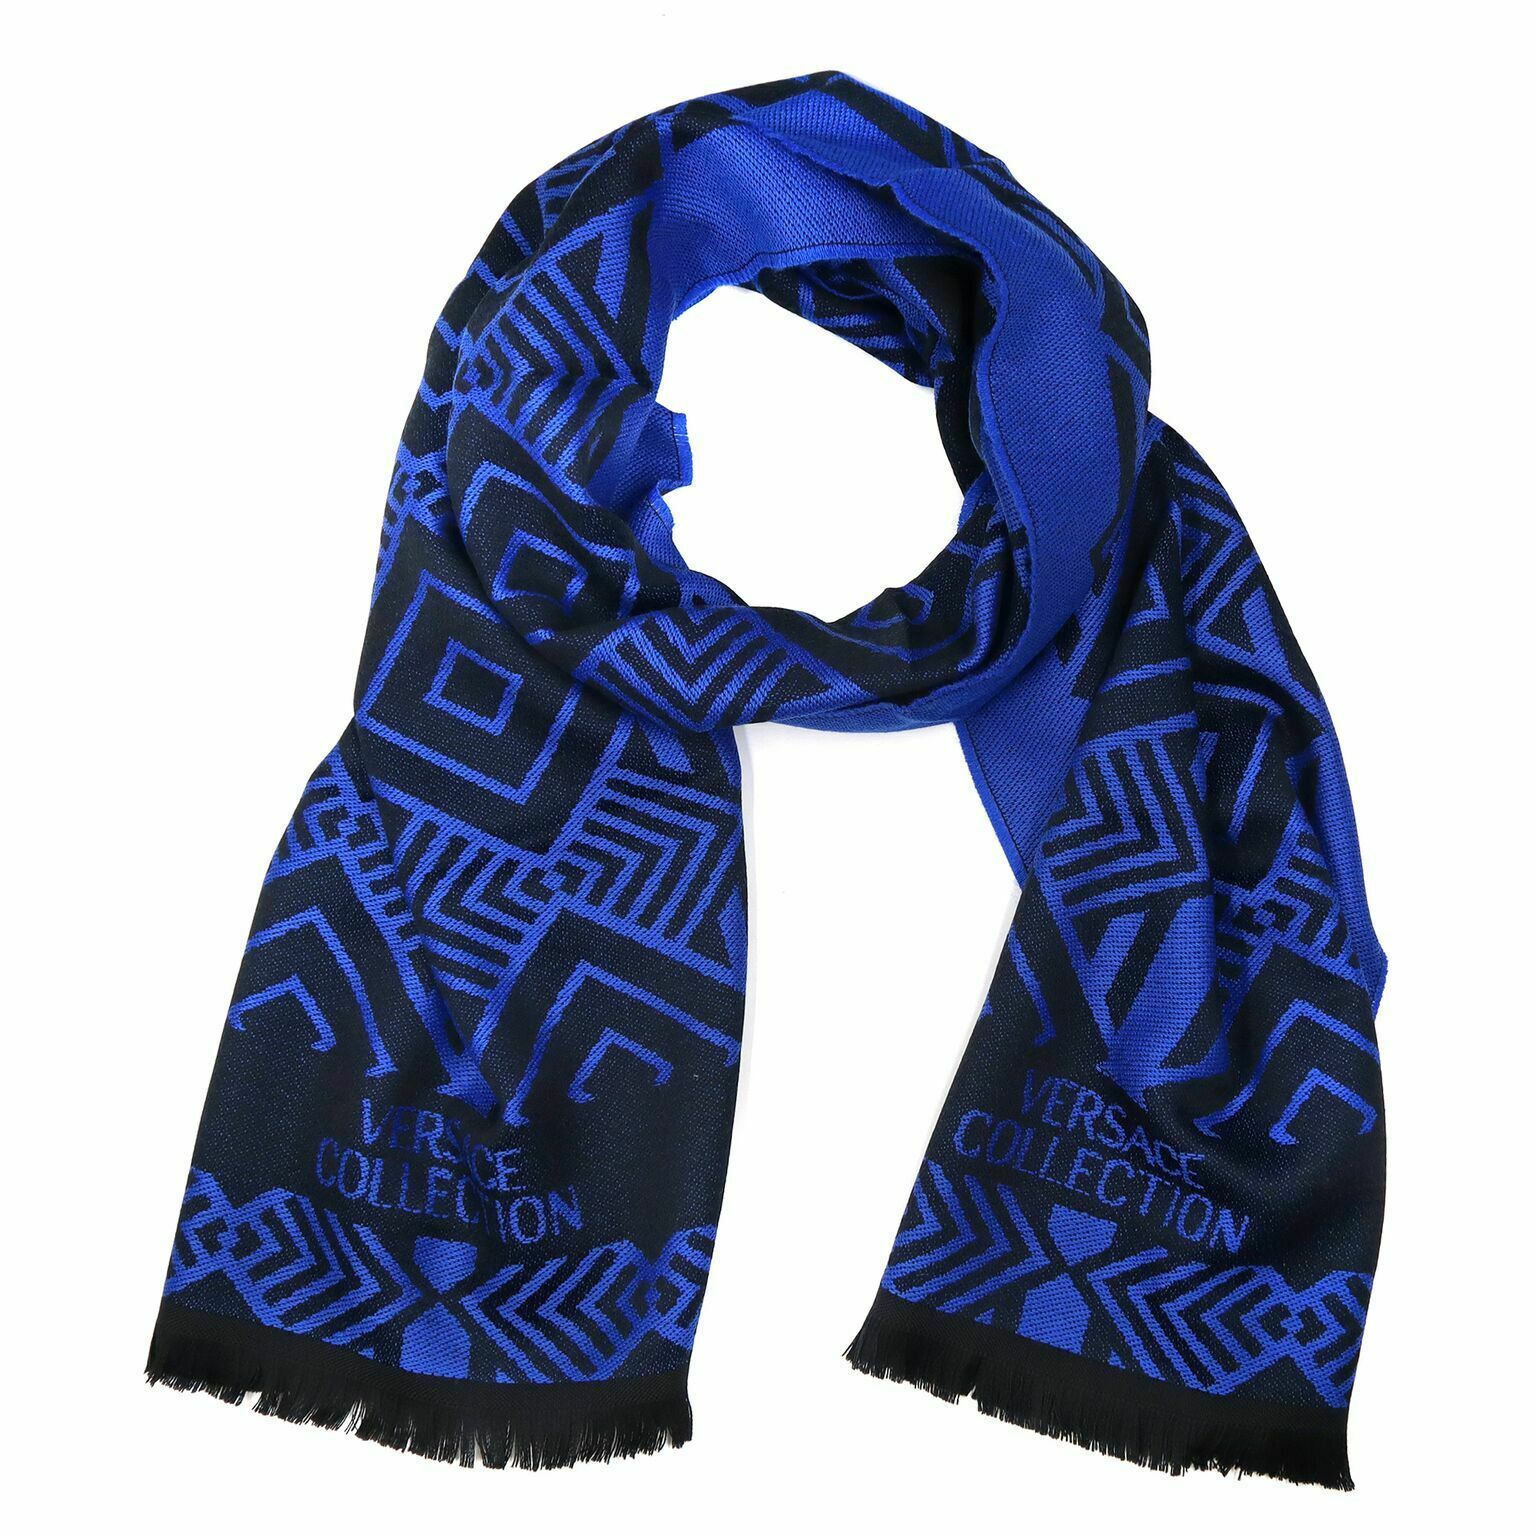 Primary image for Versace Collection Black & Royal Blue Mens Scarf ISC40R1WIT02856I4071